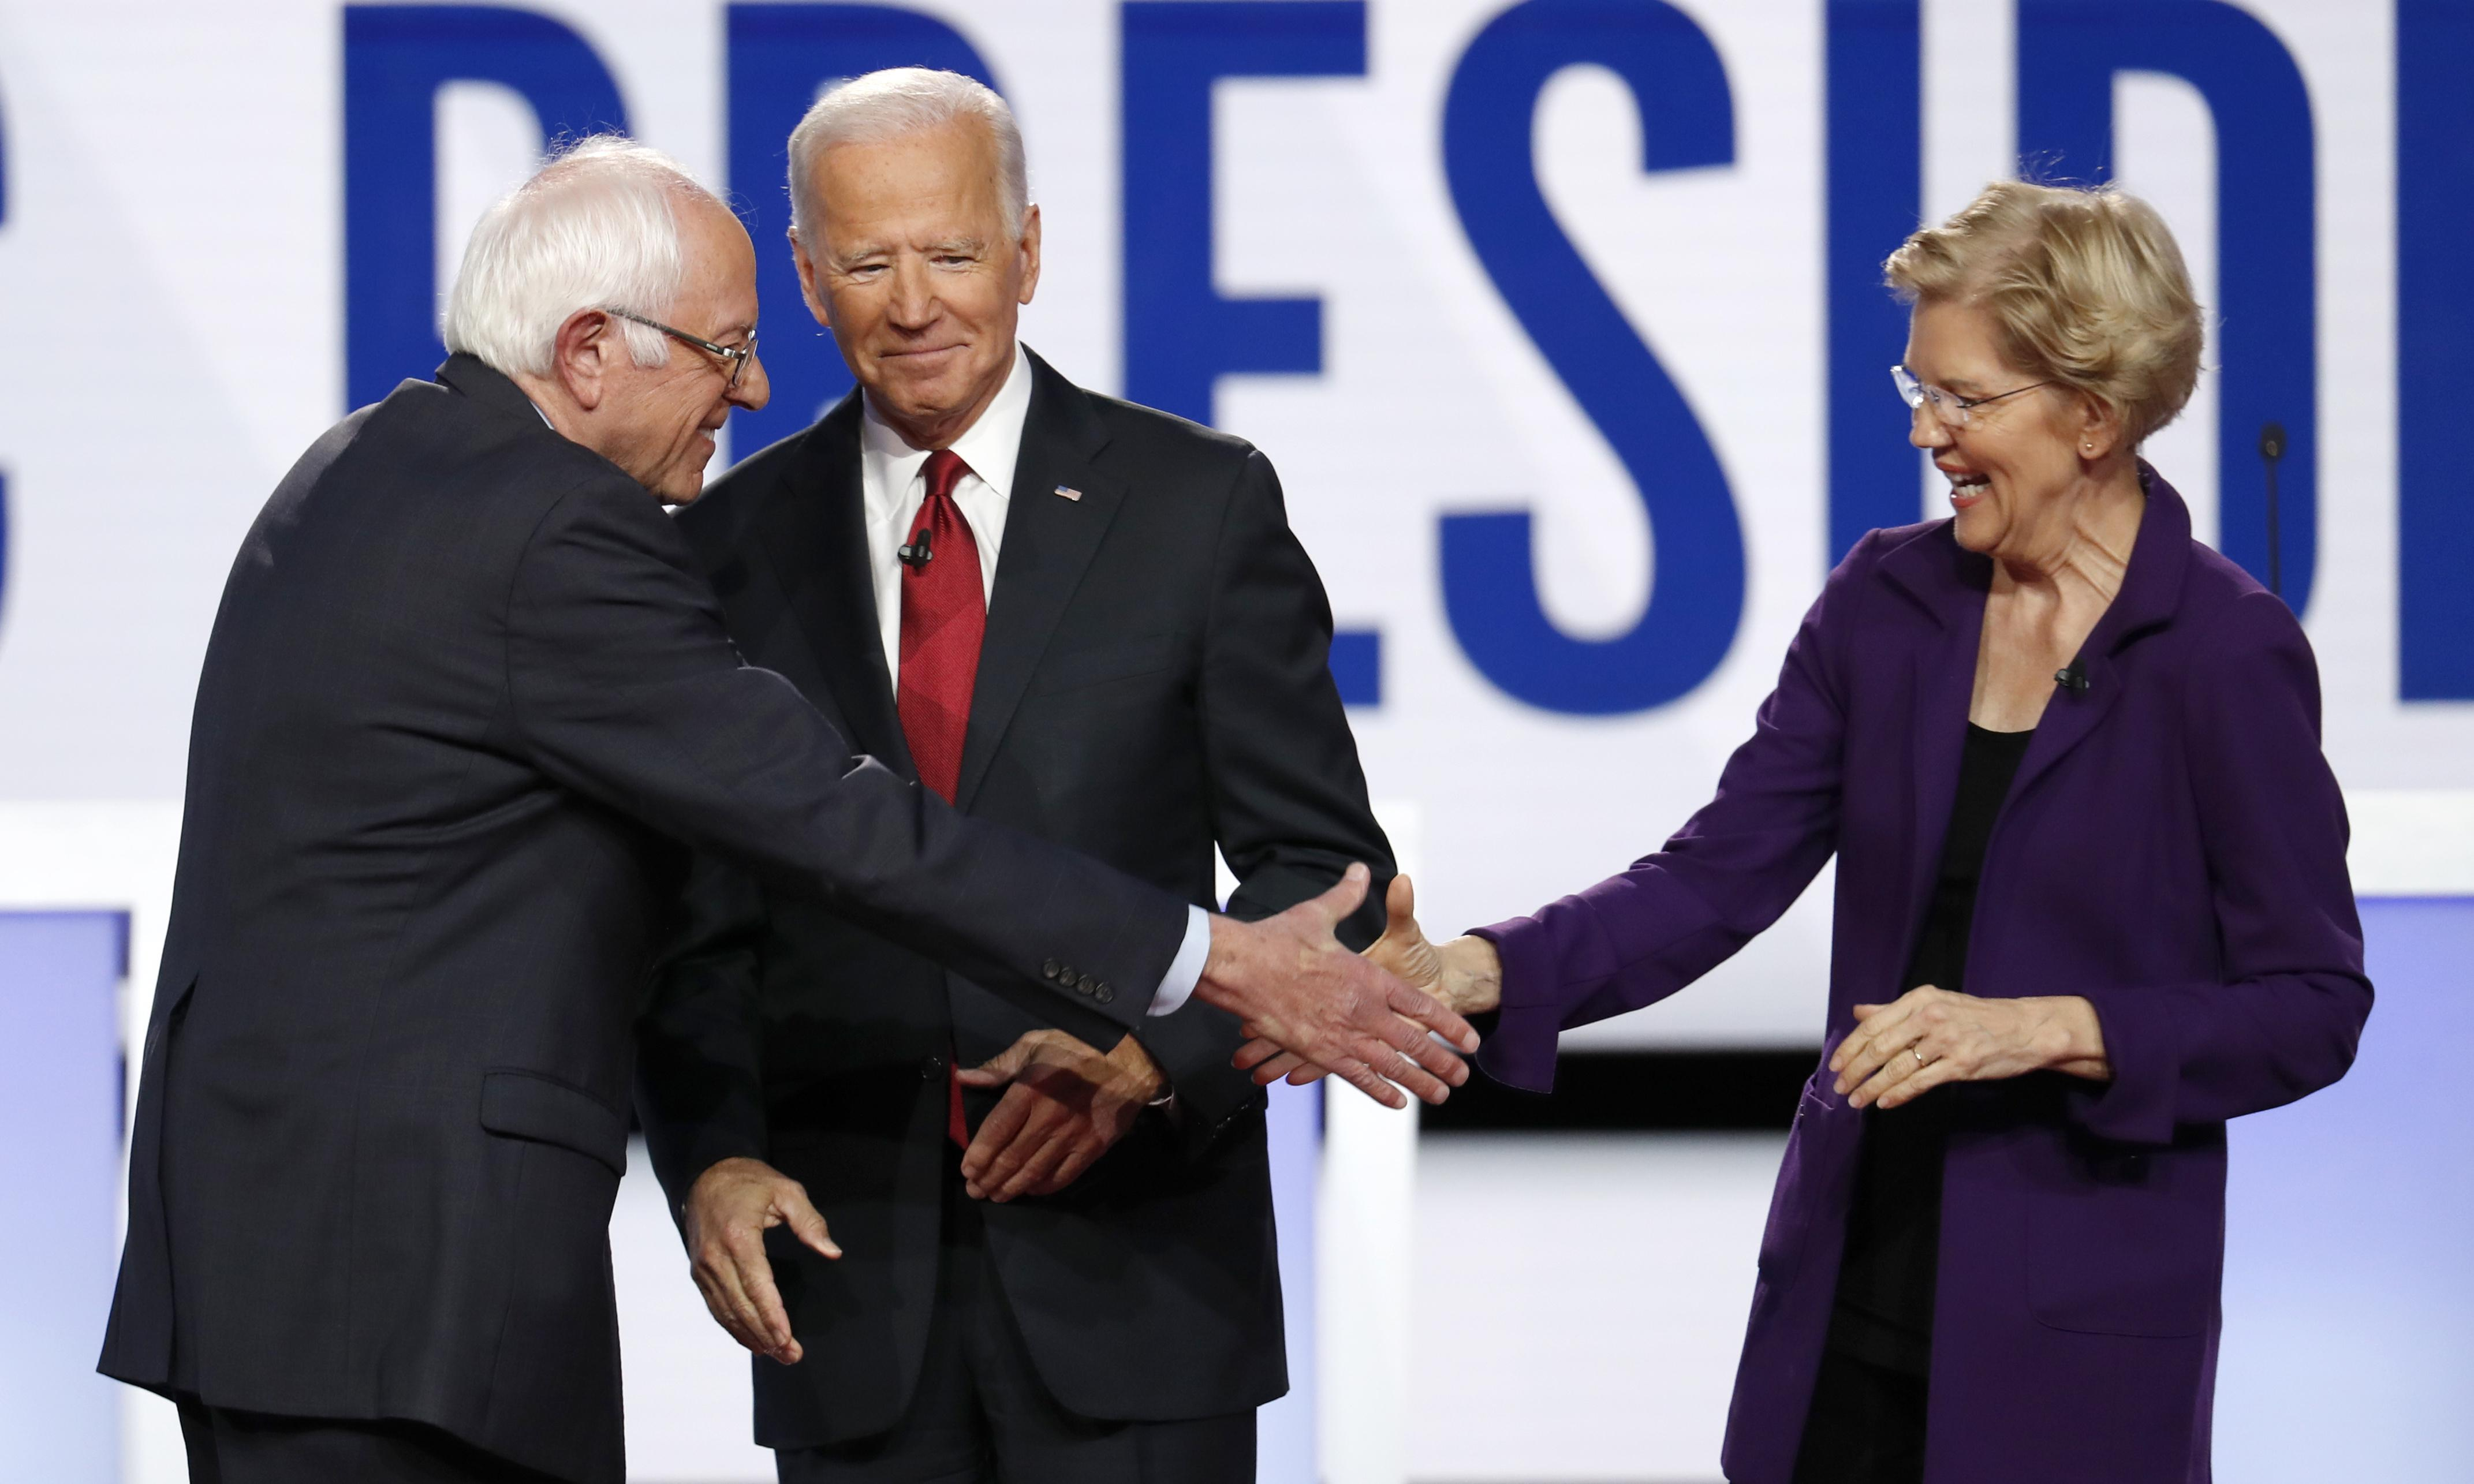 Sanders and Warren build big war chests as Biden fundraising lags behind